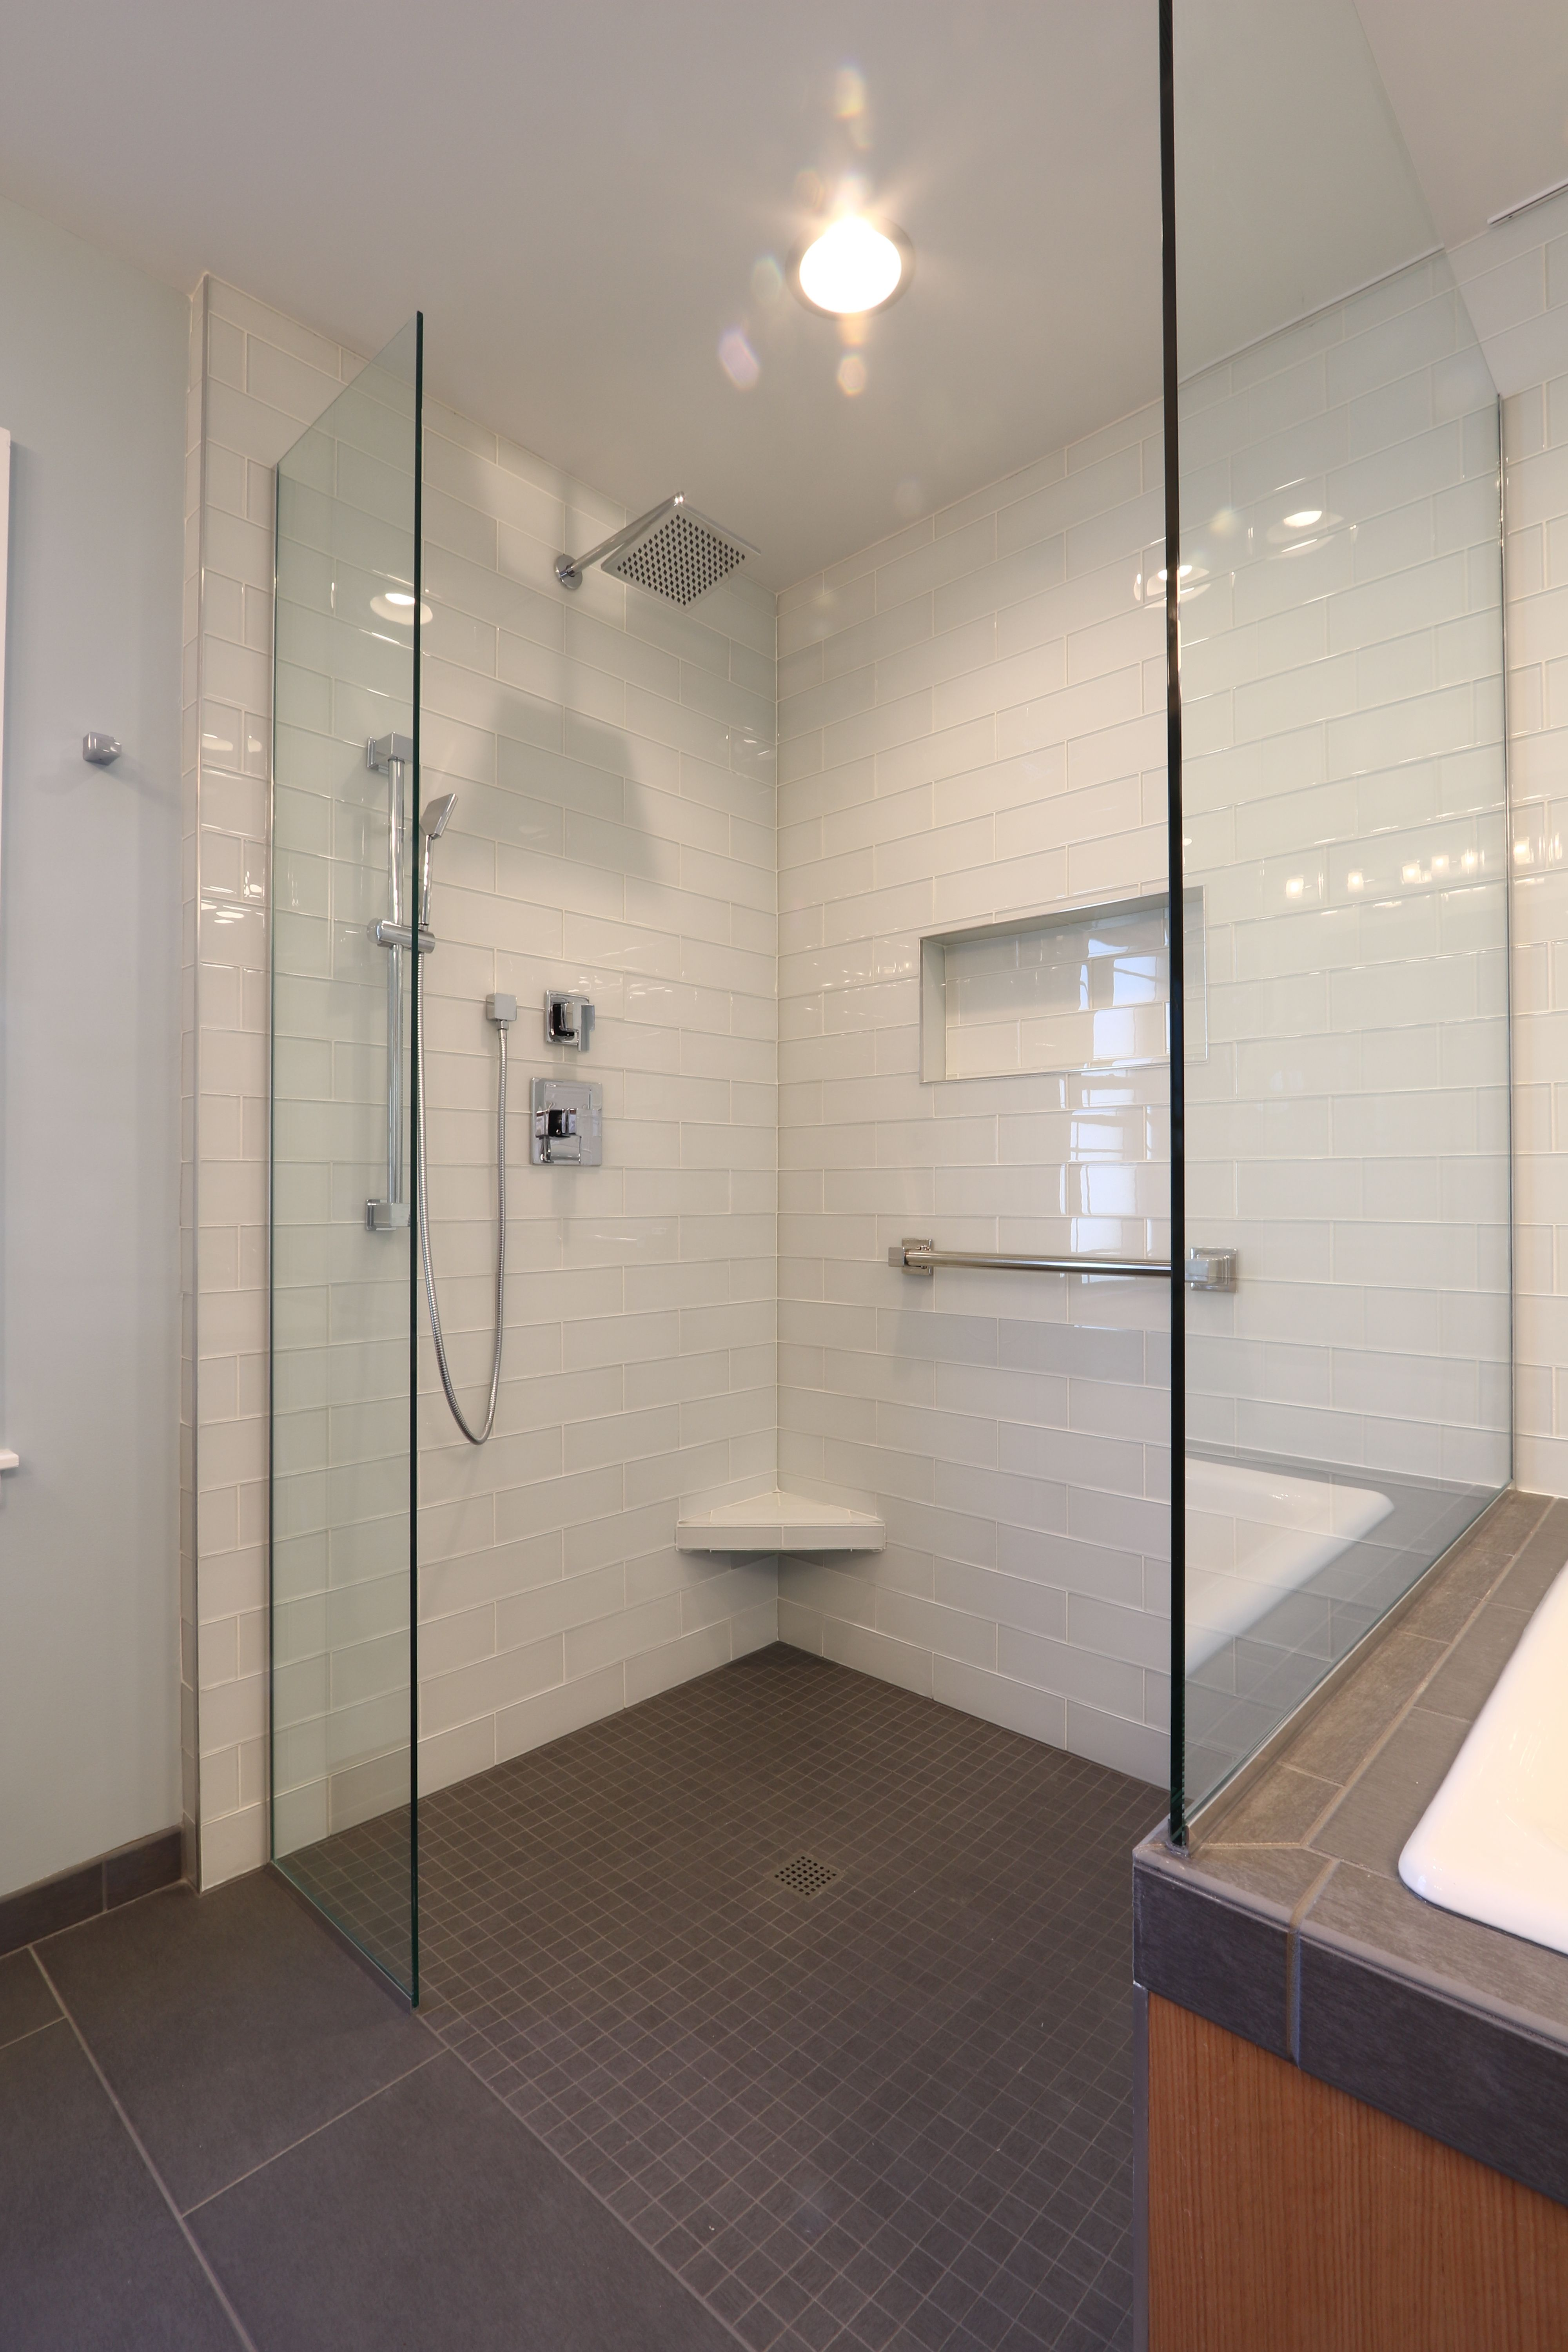 Roll in shower white glass subway tiles recessed niche handheld roll in shower white glass subway tiles recessed niche handheld shower and clear dailygadgetfo Gallery